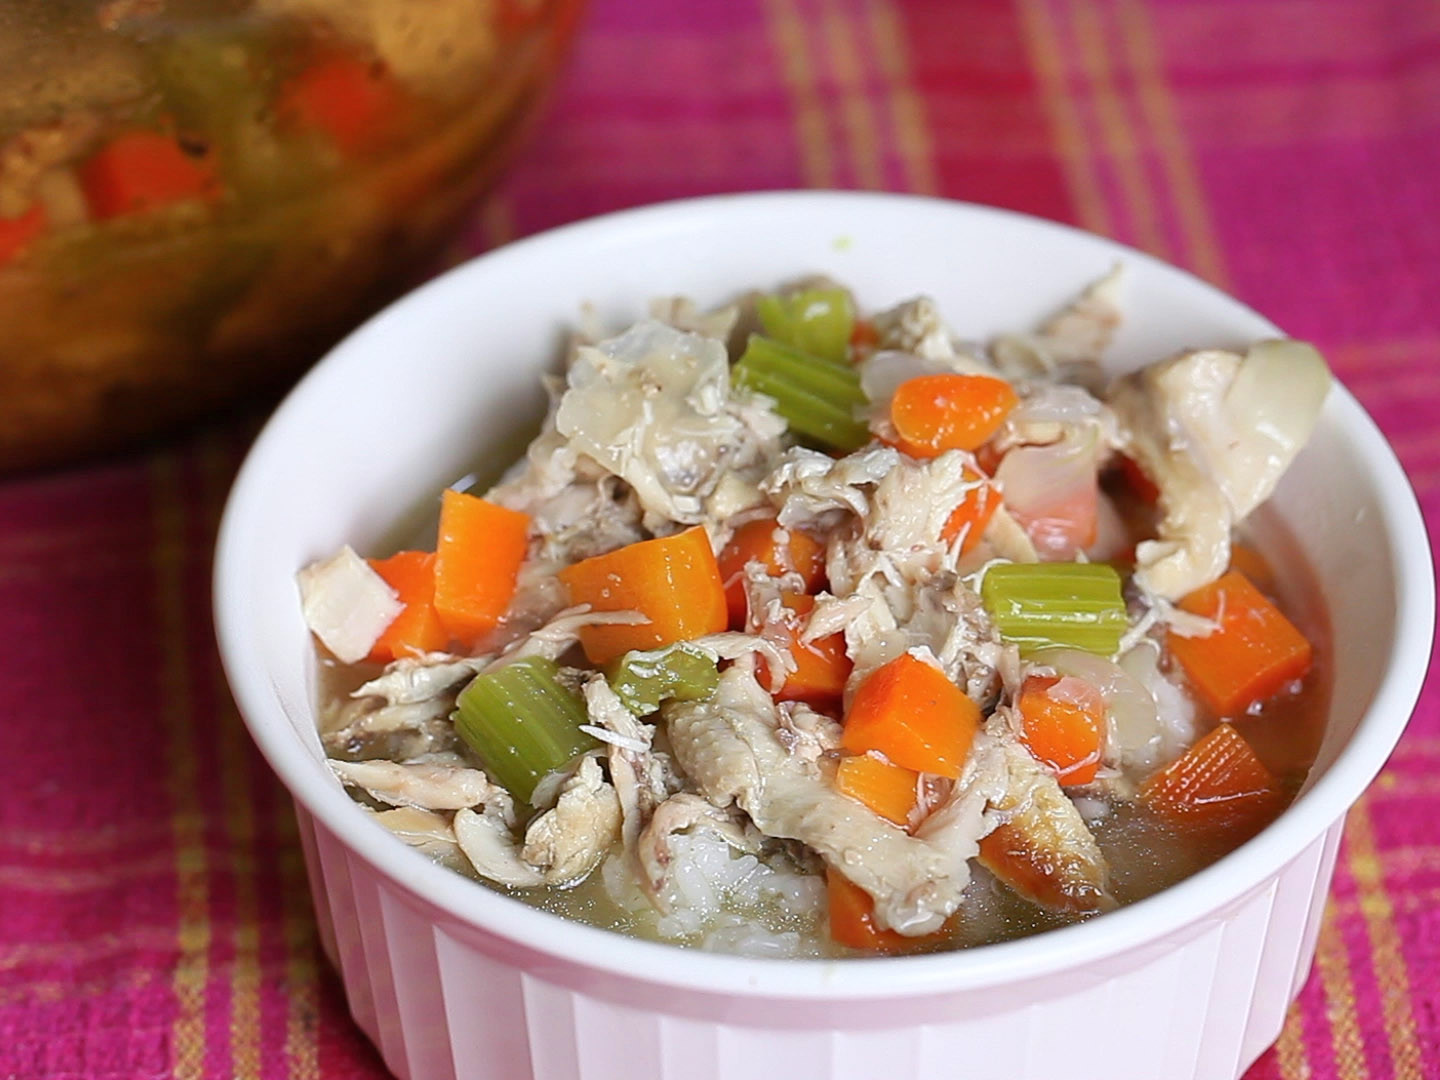 Healthy Soups To Make  How to Make Easy and Delicious Chicken Soup wikiHow